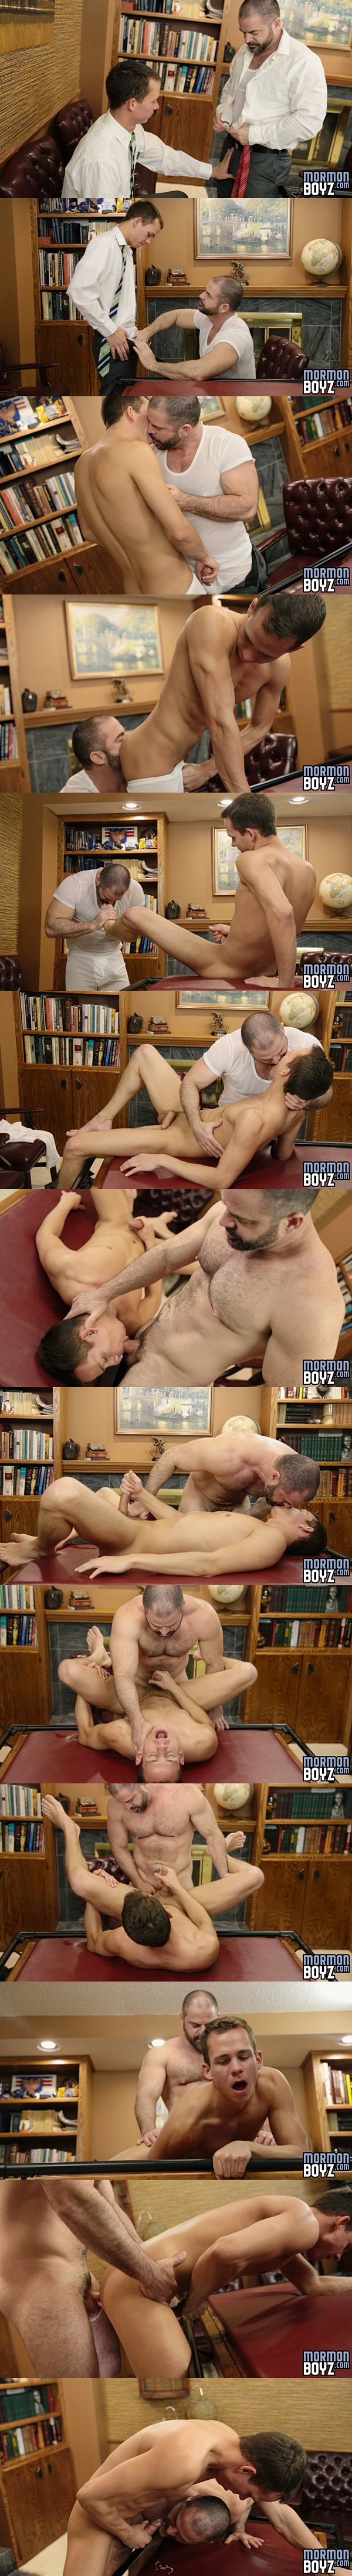 Macho daddy Bishop Angus barebacks cute missionary Elder Lindsay in Inspection at Mormonboyz 02